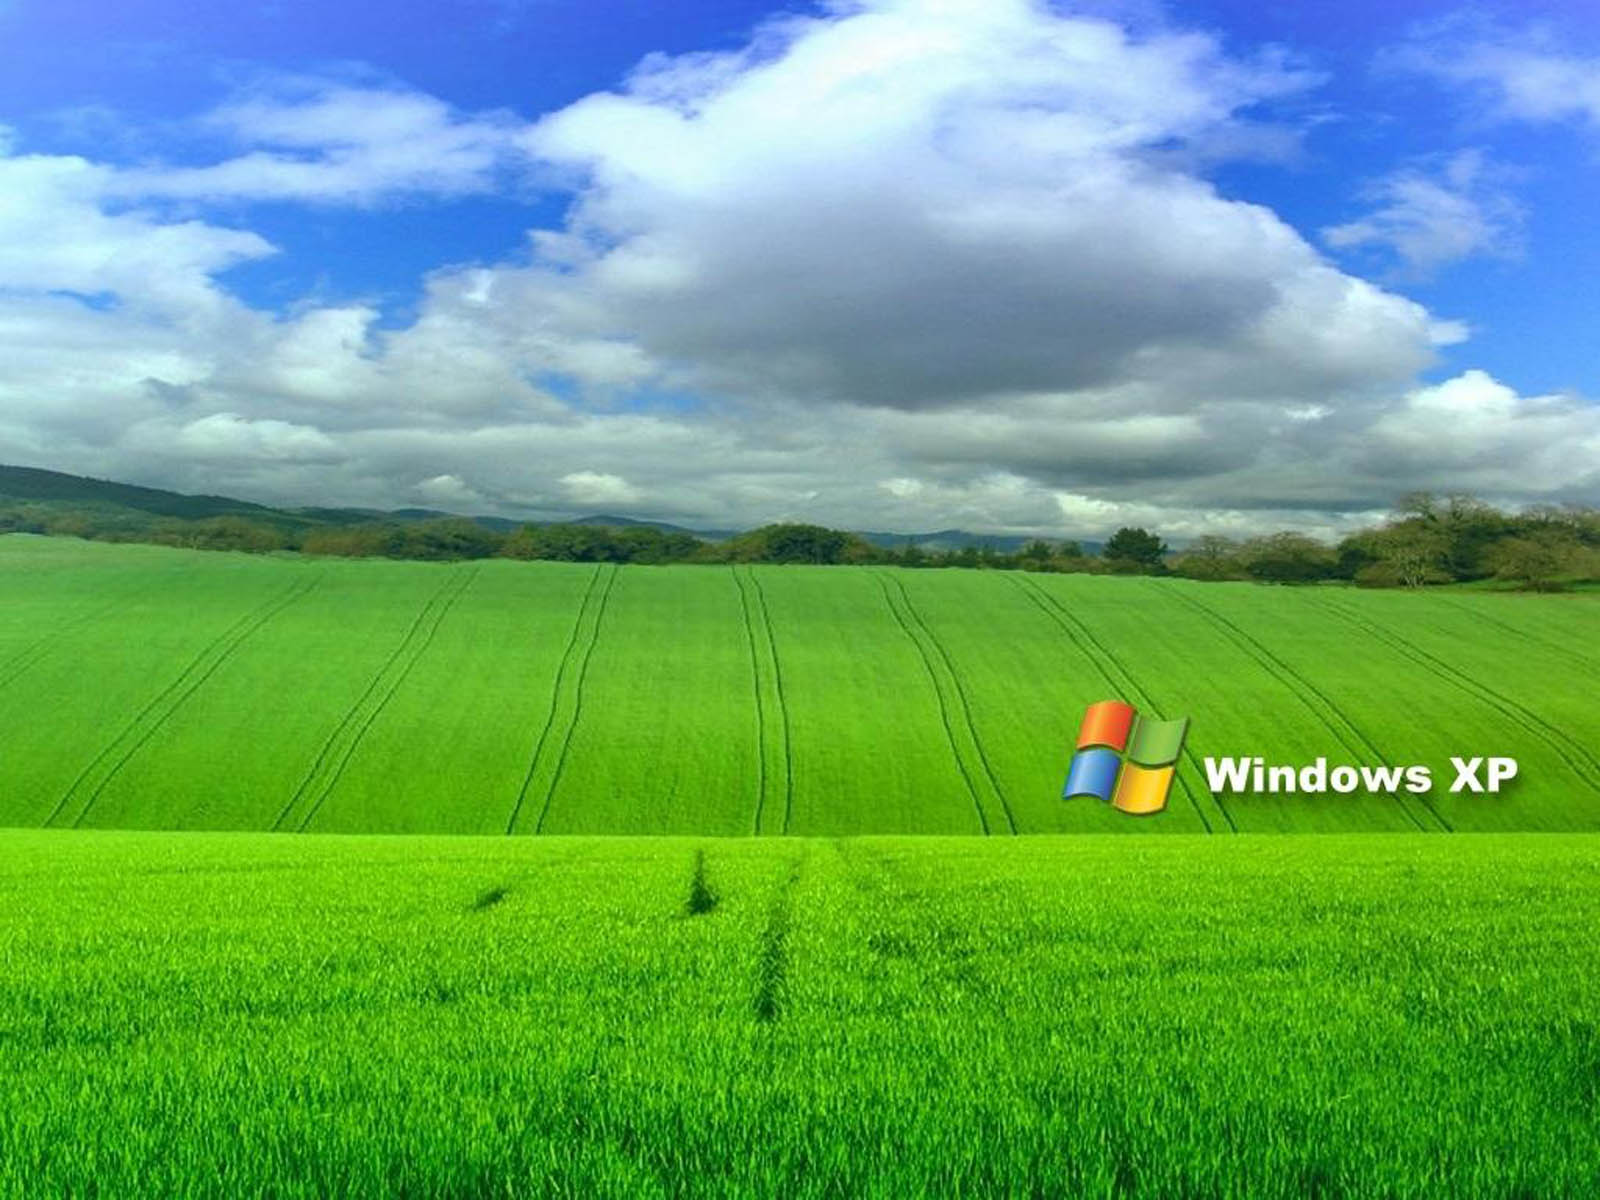 ... Desktop Wallpapers, Images, Photos, Pictures and Backgrounds for free